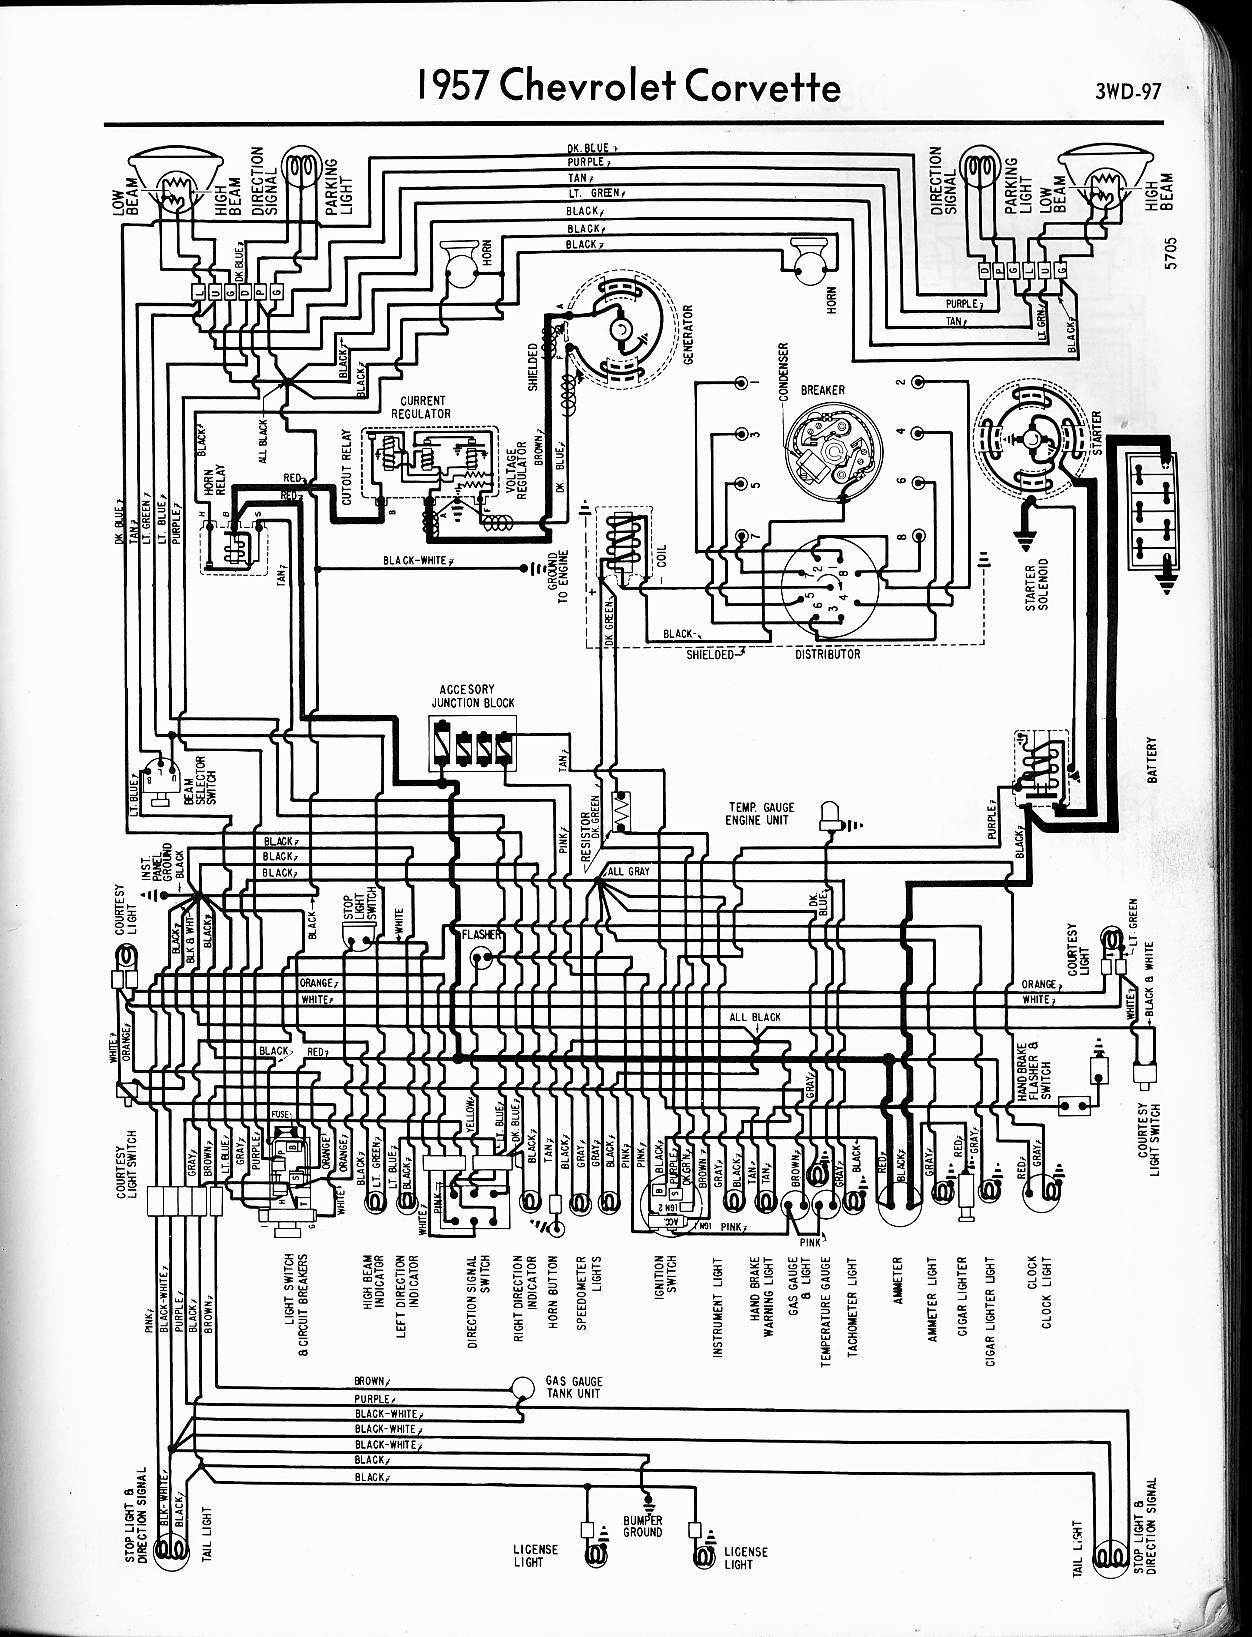 57 65 chevy wiring diagrams rh oldcarmanualproject com 98 Mustang Wiring Diagram Chevy Ignition Switch Wiring Diagram